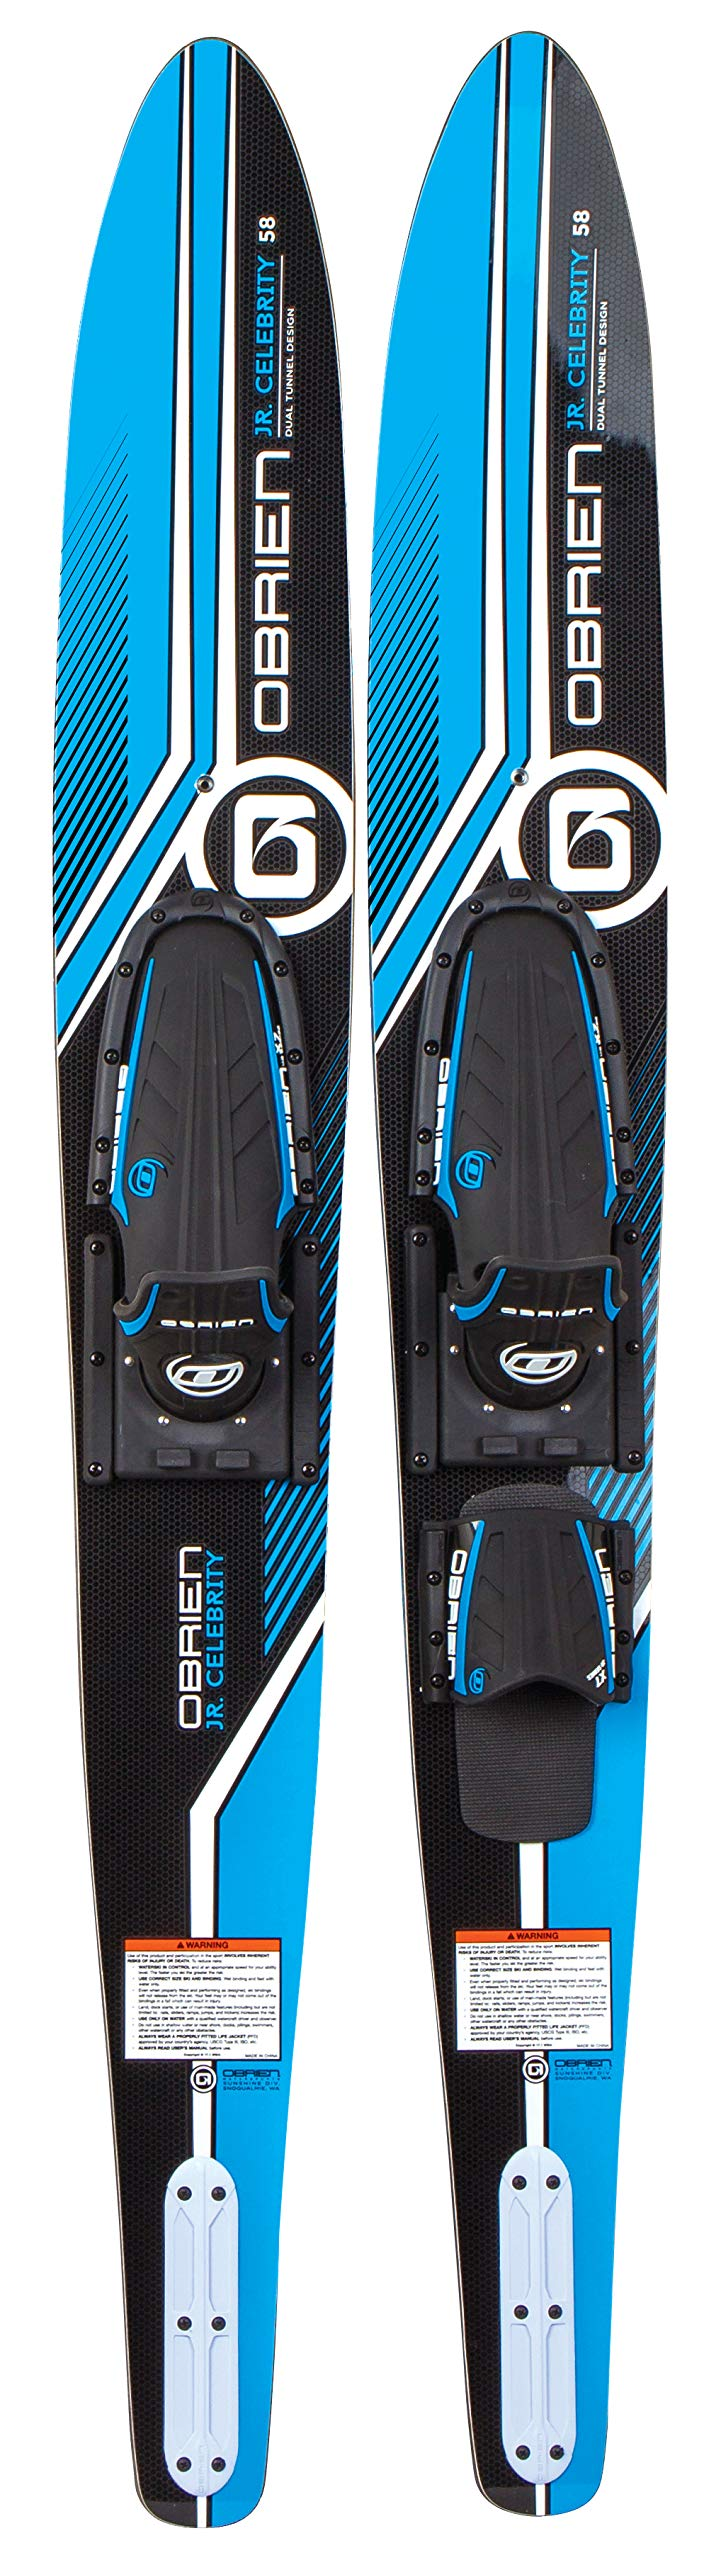 O'Brien Jr. Celebrity Combo Water Skis, 58''